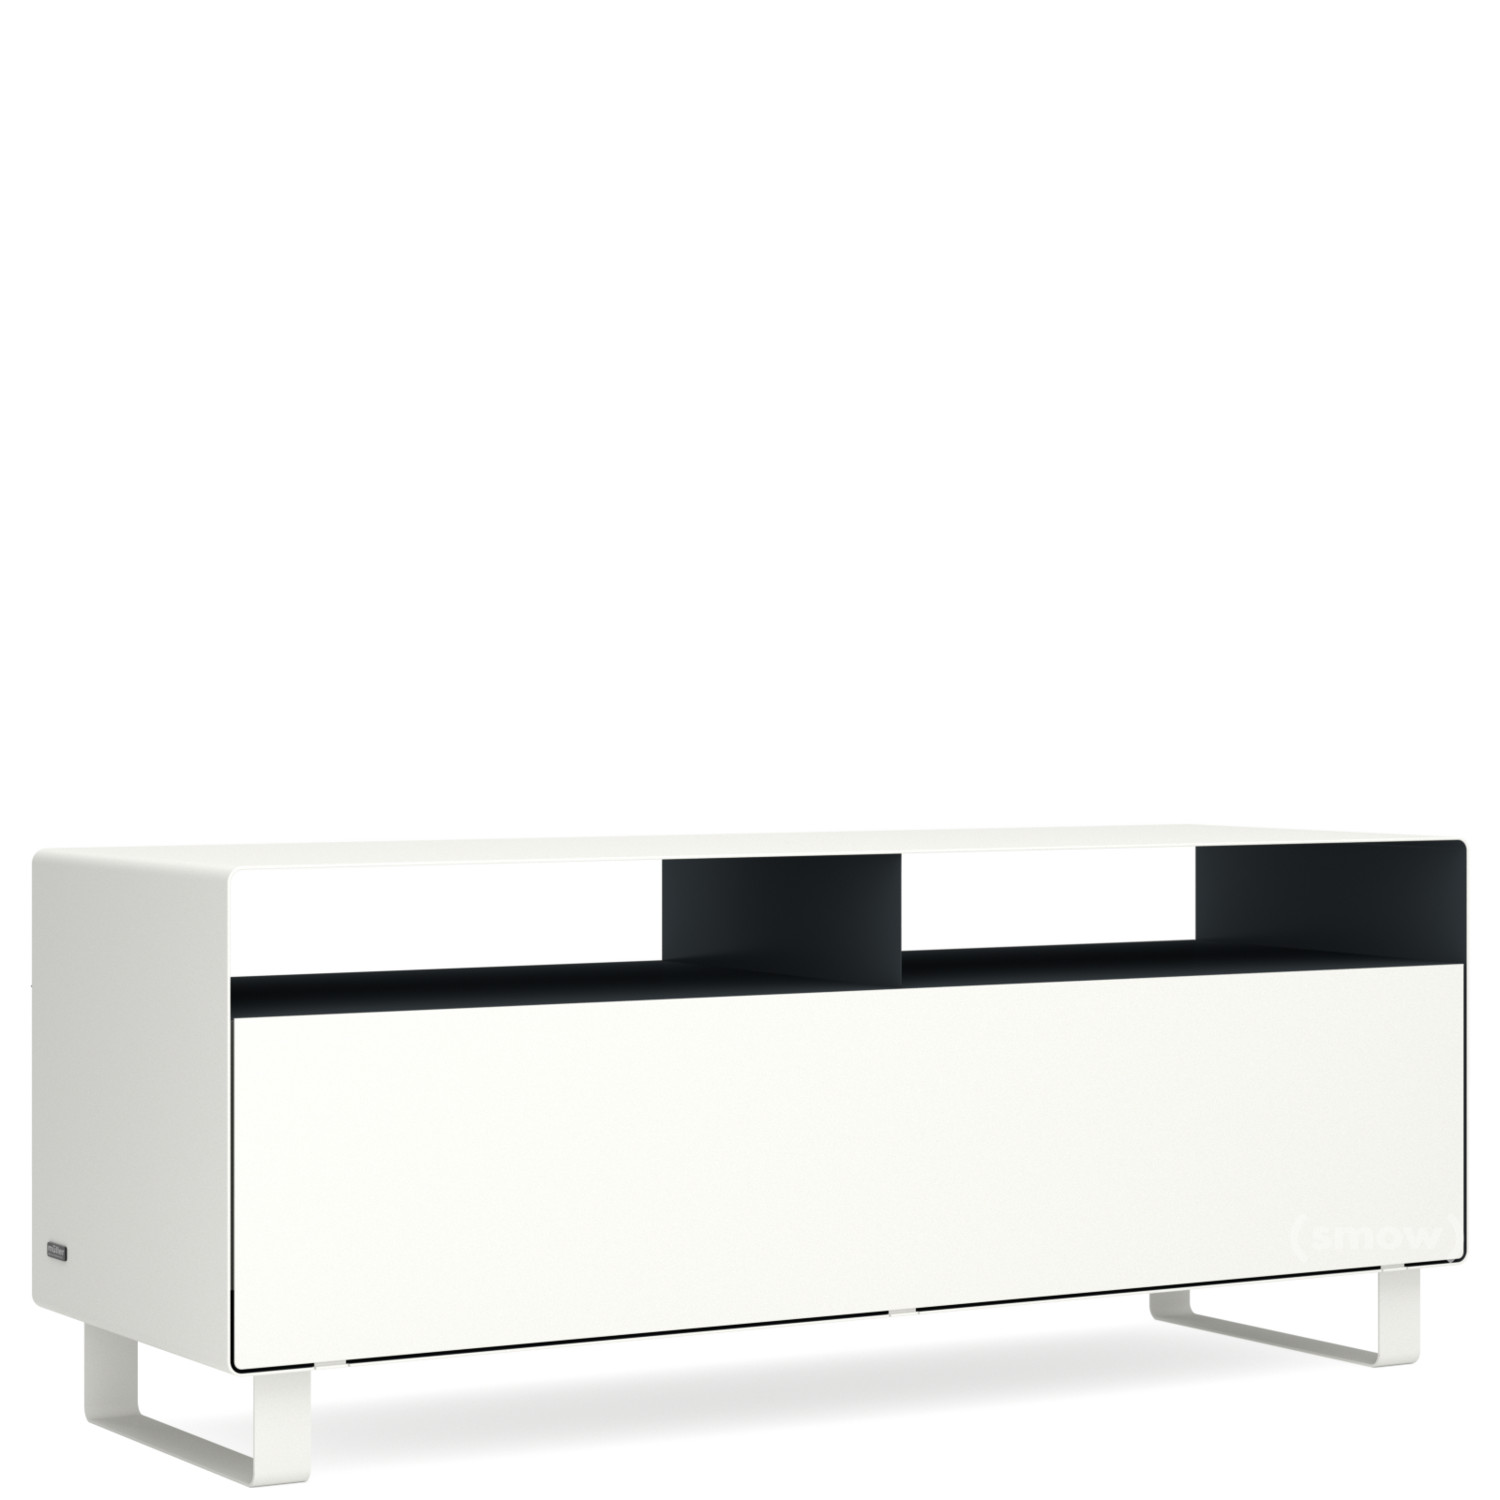 Anthrazit Grau Metallic Ral Müller Möbelfabrikation Tv Lowboard R 109n Bicoloured Pure White